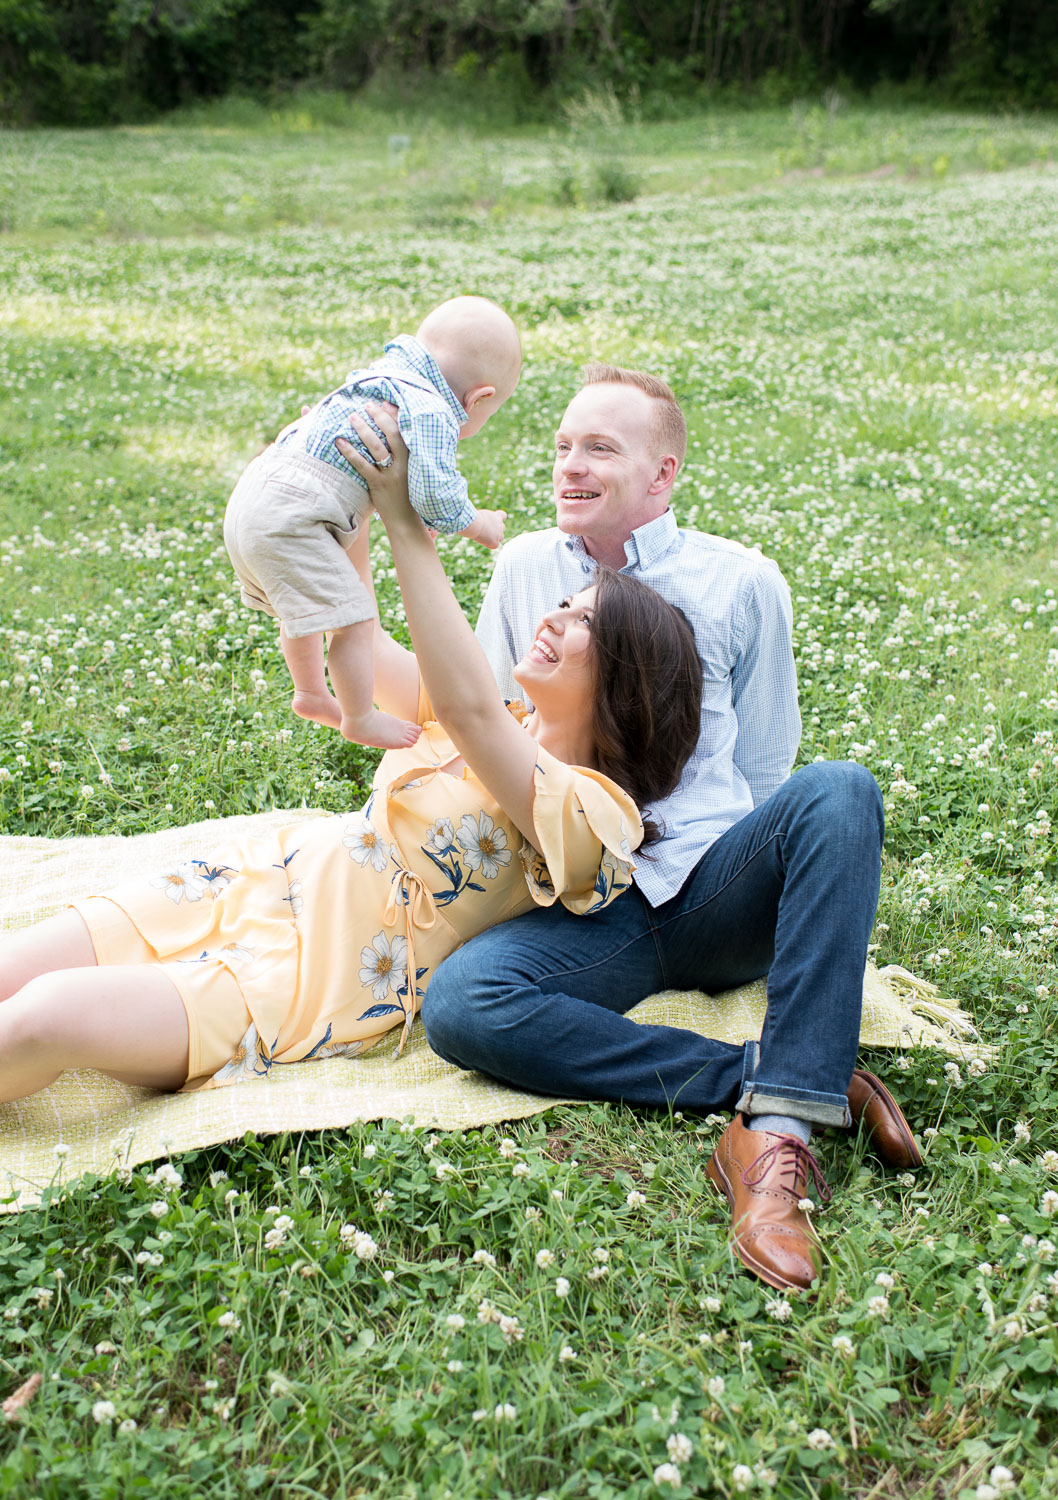 Outdoor Lifestyle Family Shoot - D. Phillips Photography - Fort Campbell Clarksville, TN - www.dphillipsphotography.com